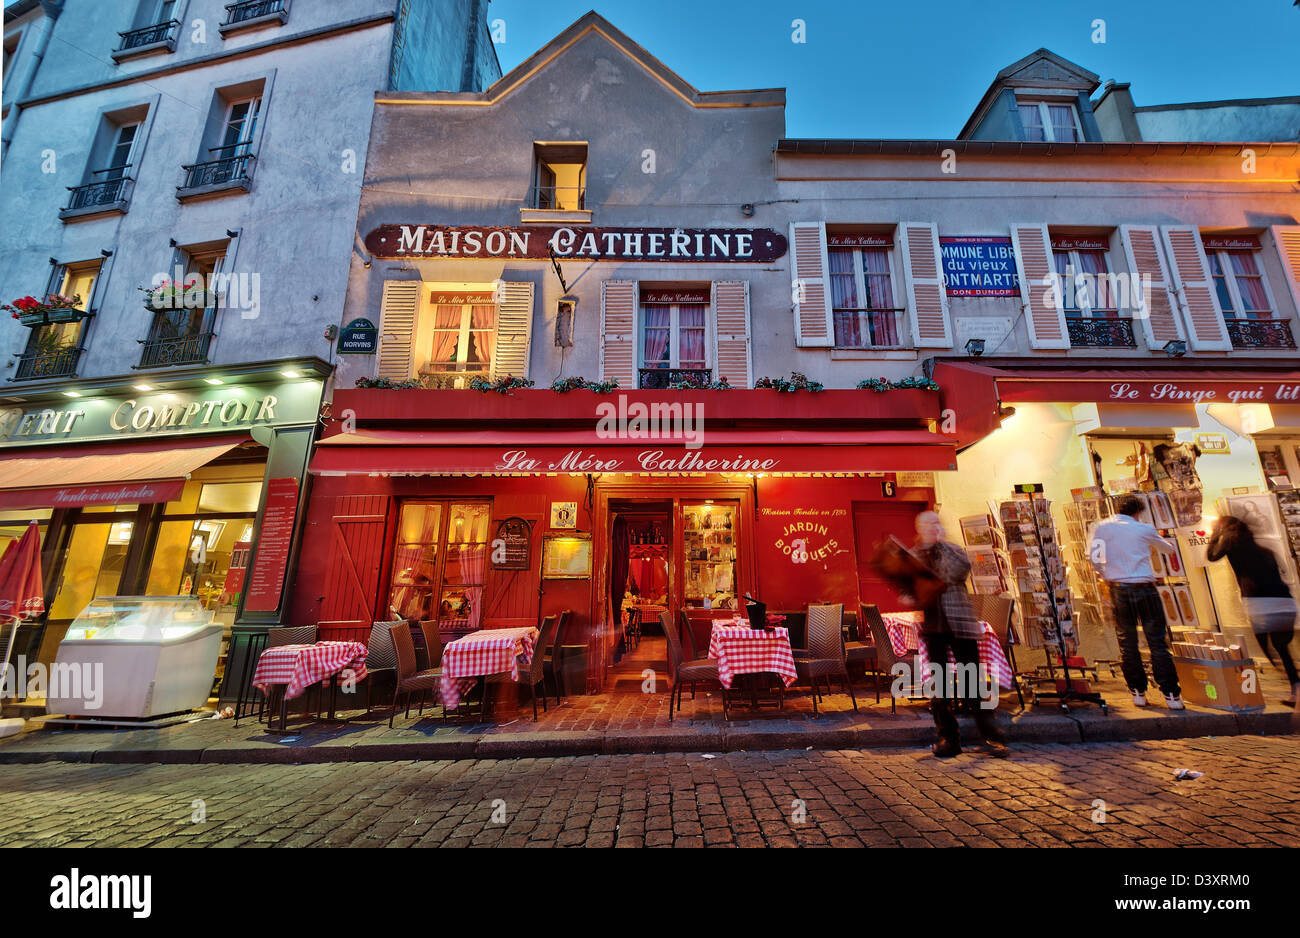 Maison catherine and restaurant la m re catherine near place du stock photo royalty free - La maison du canape paris ...